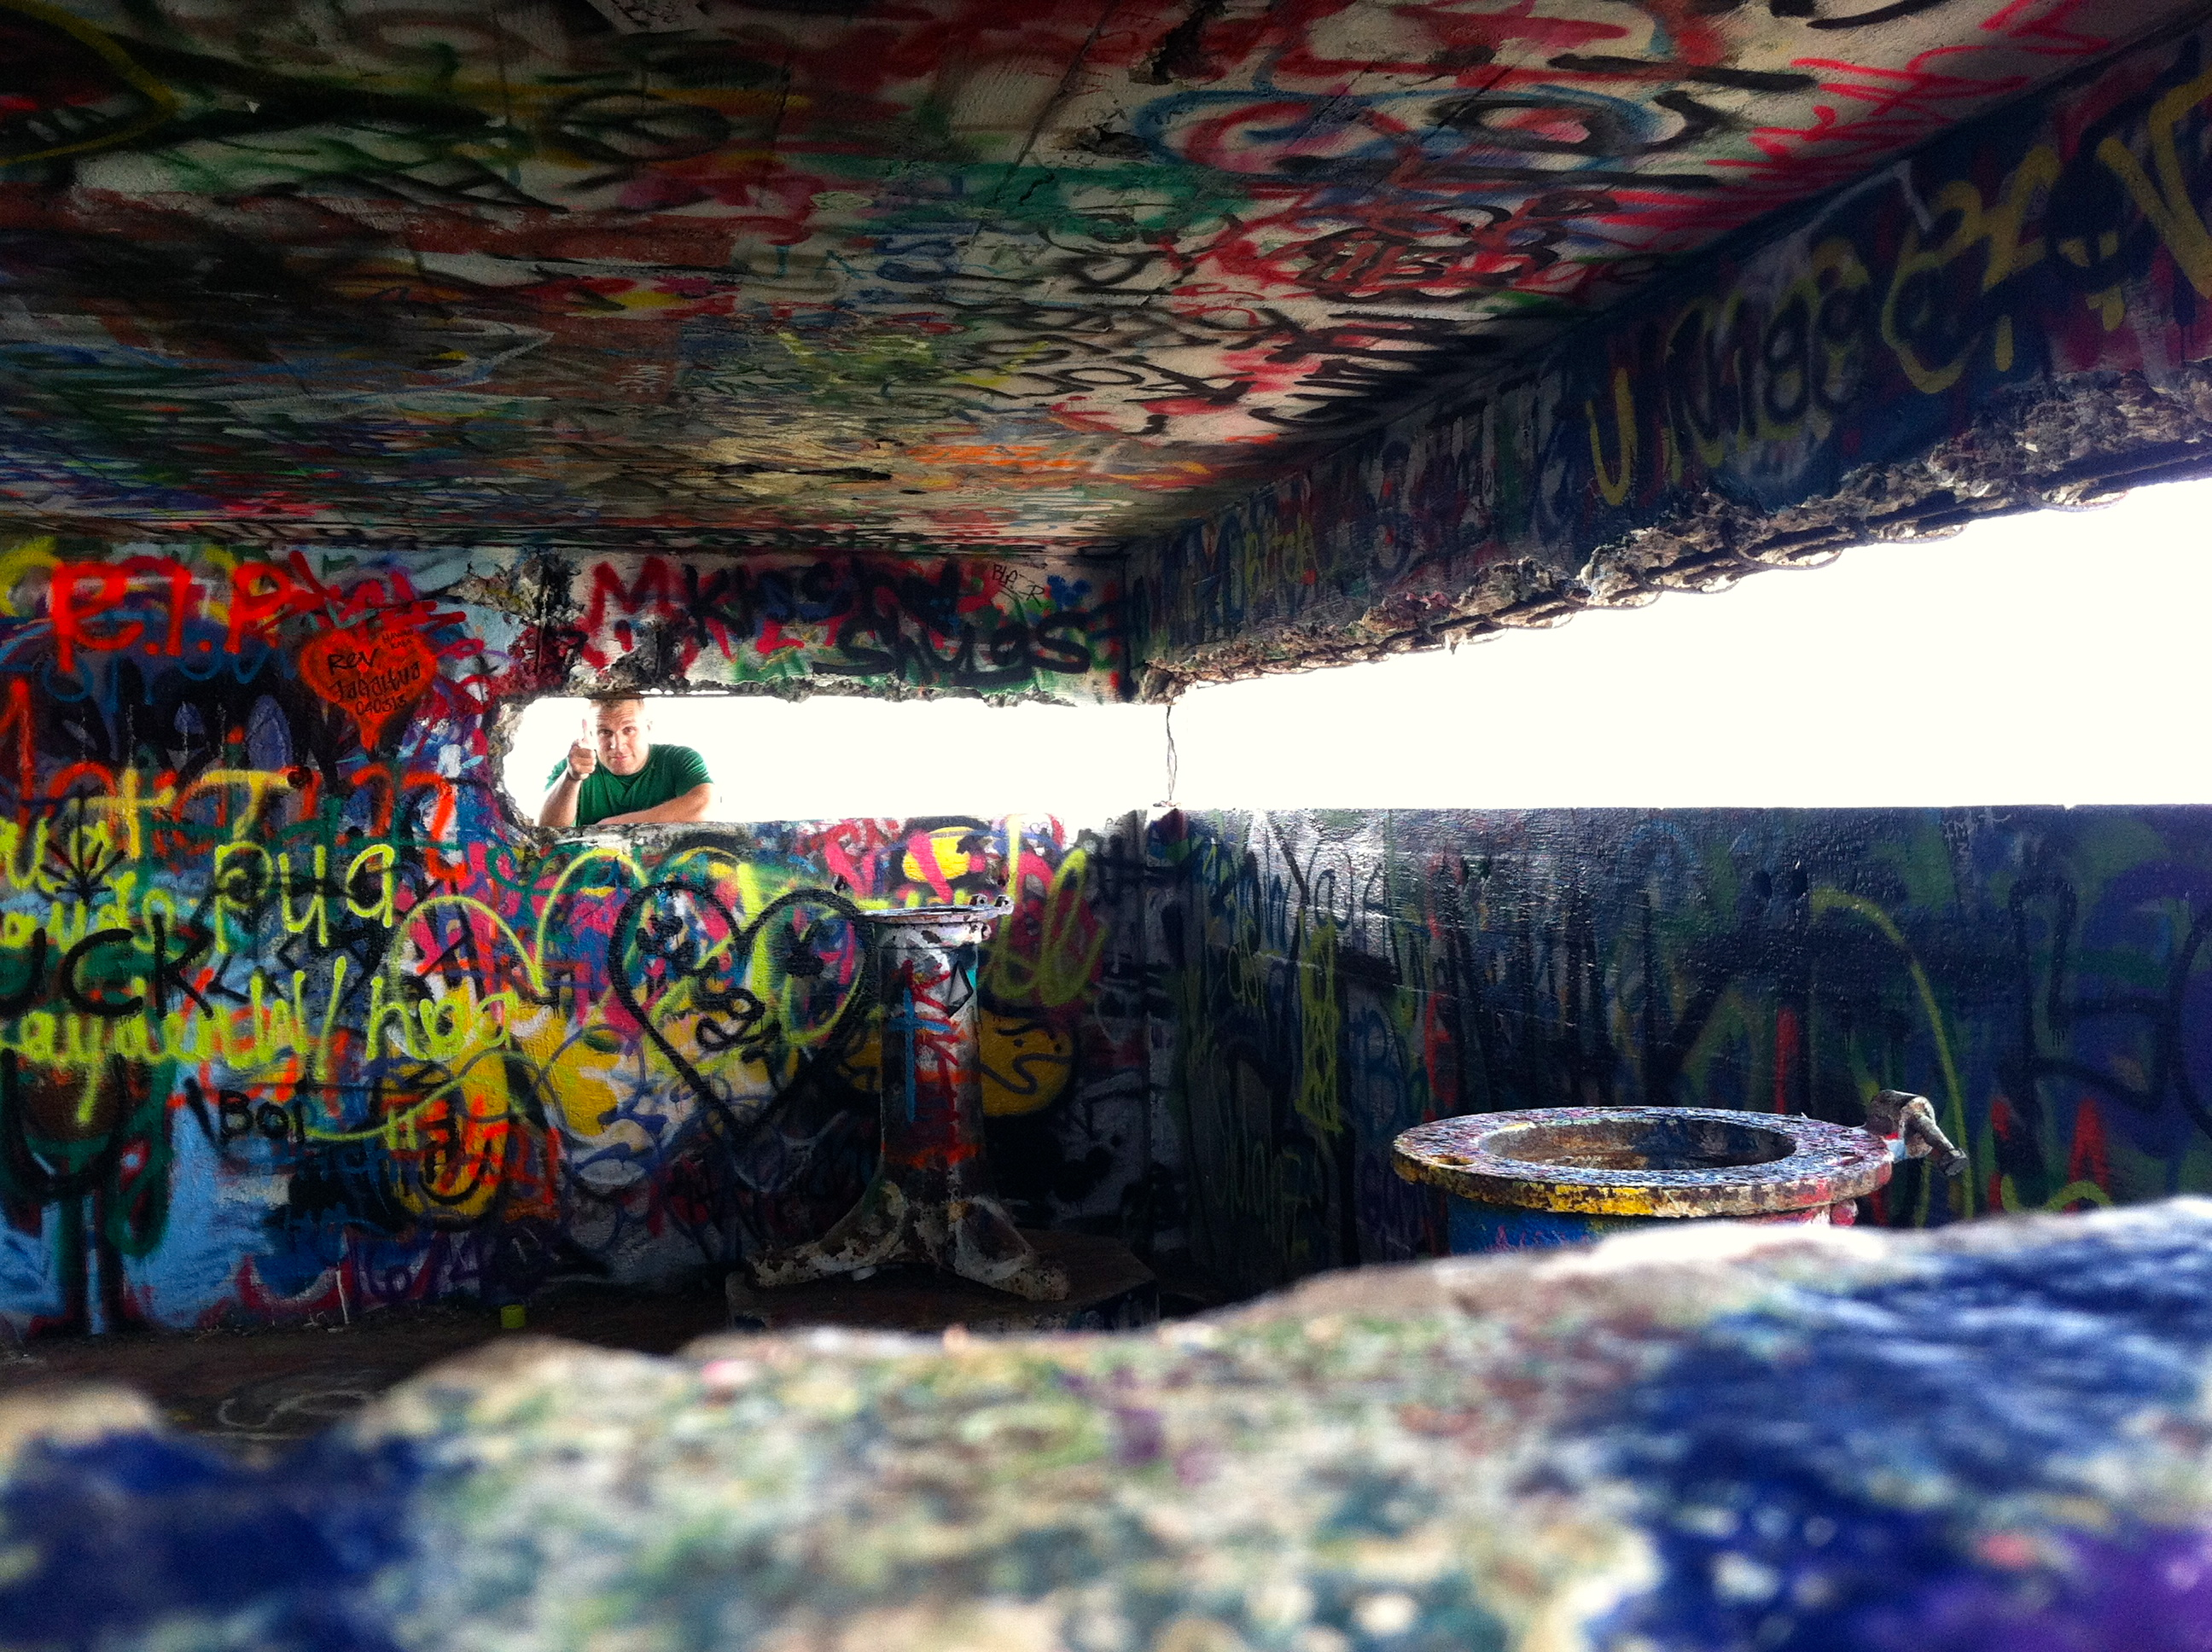 Pillbox4